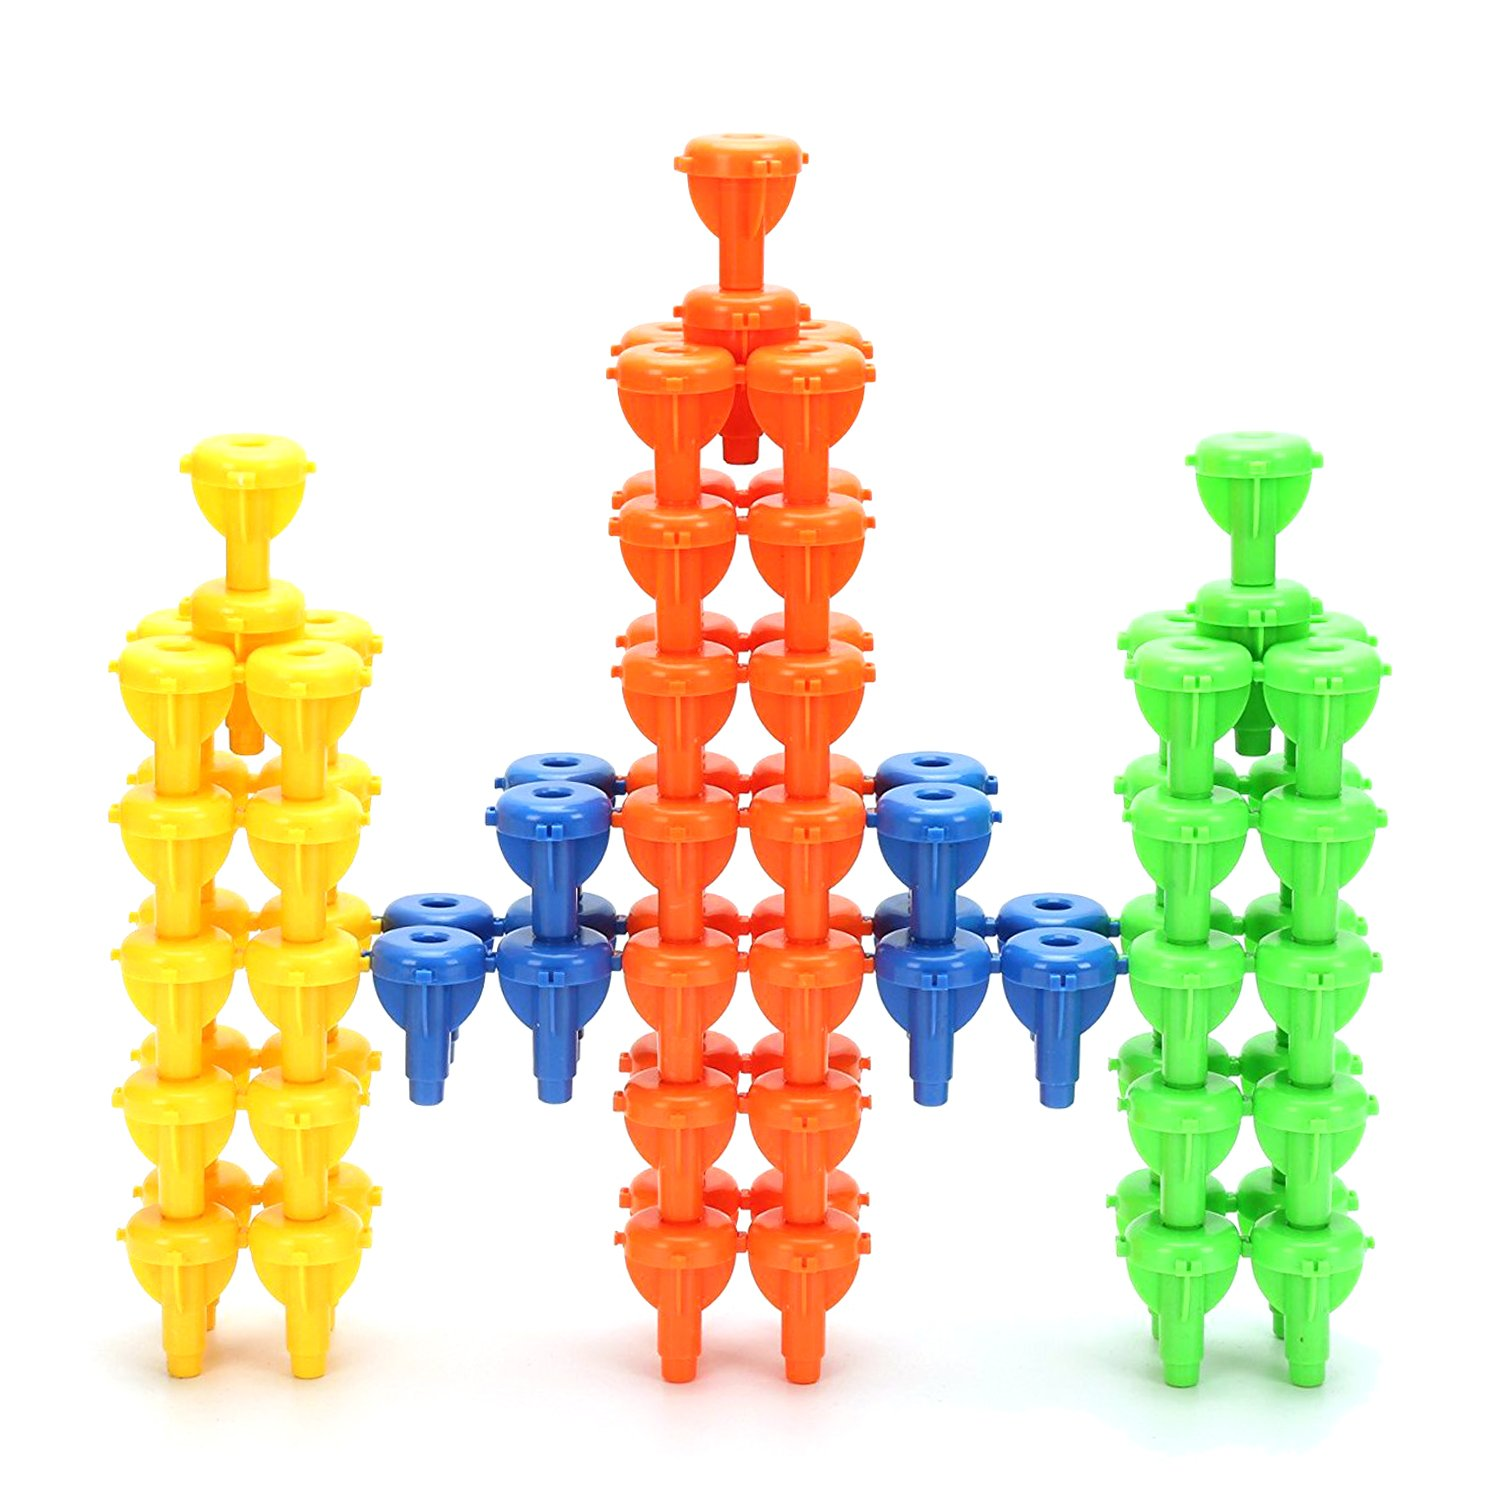 96Pcs Pegs Stacking Toy Occupational Therapy Fine Motor Building Blocks Colour Recognition Sorting Games for Kids   B07258VFVN